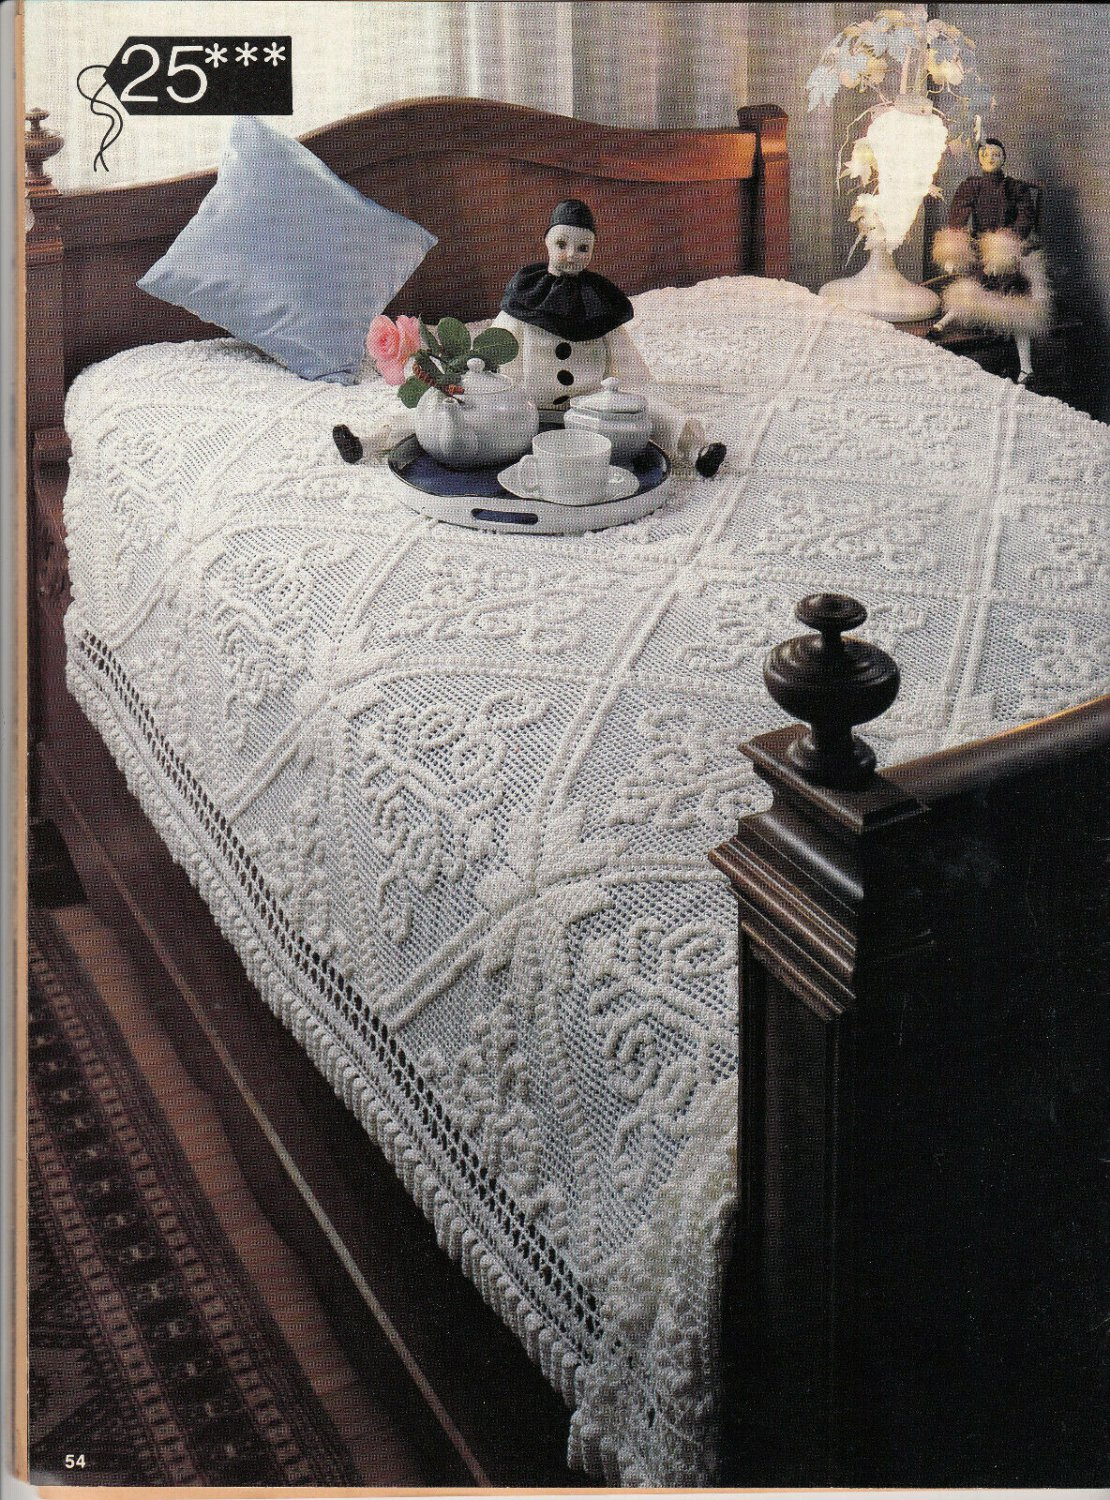 PDF FILE VINTAGE CROCHET PATTERN for Beautiful Victorian Bedspread INSTRUCTIONS 0NLY